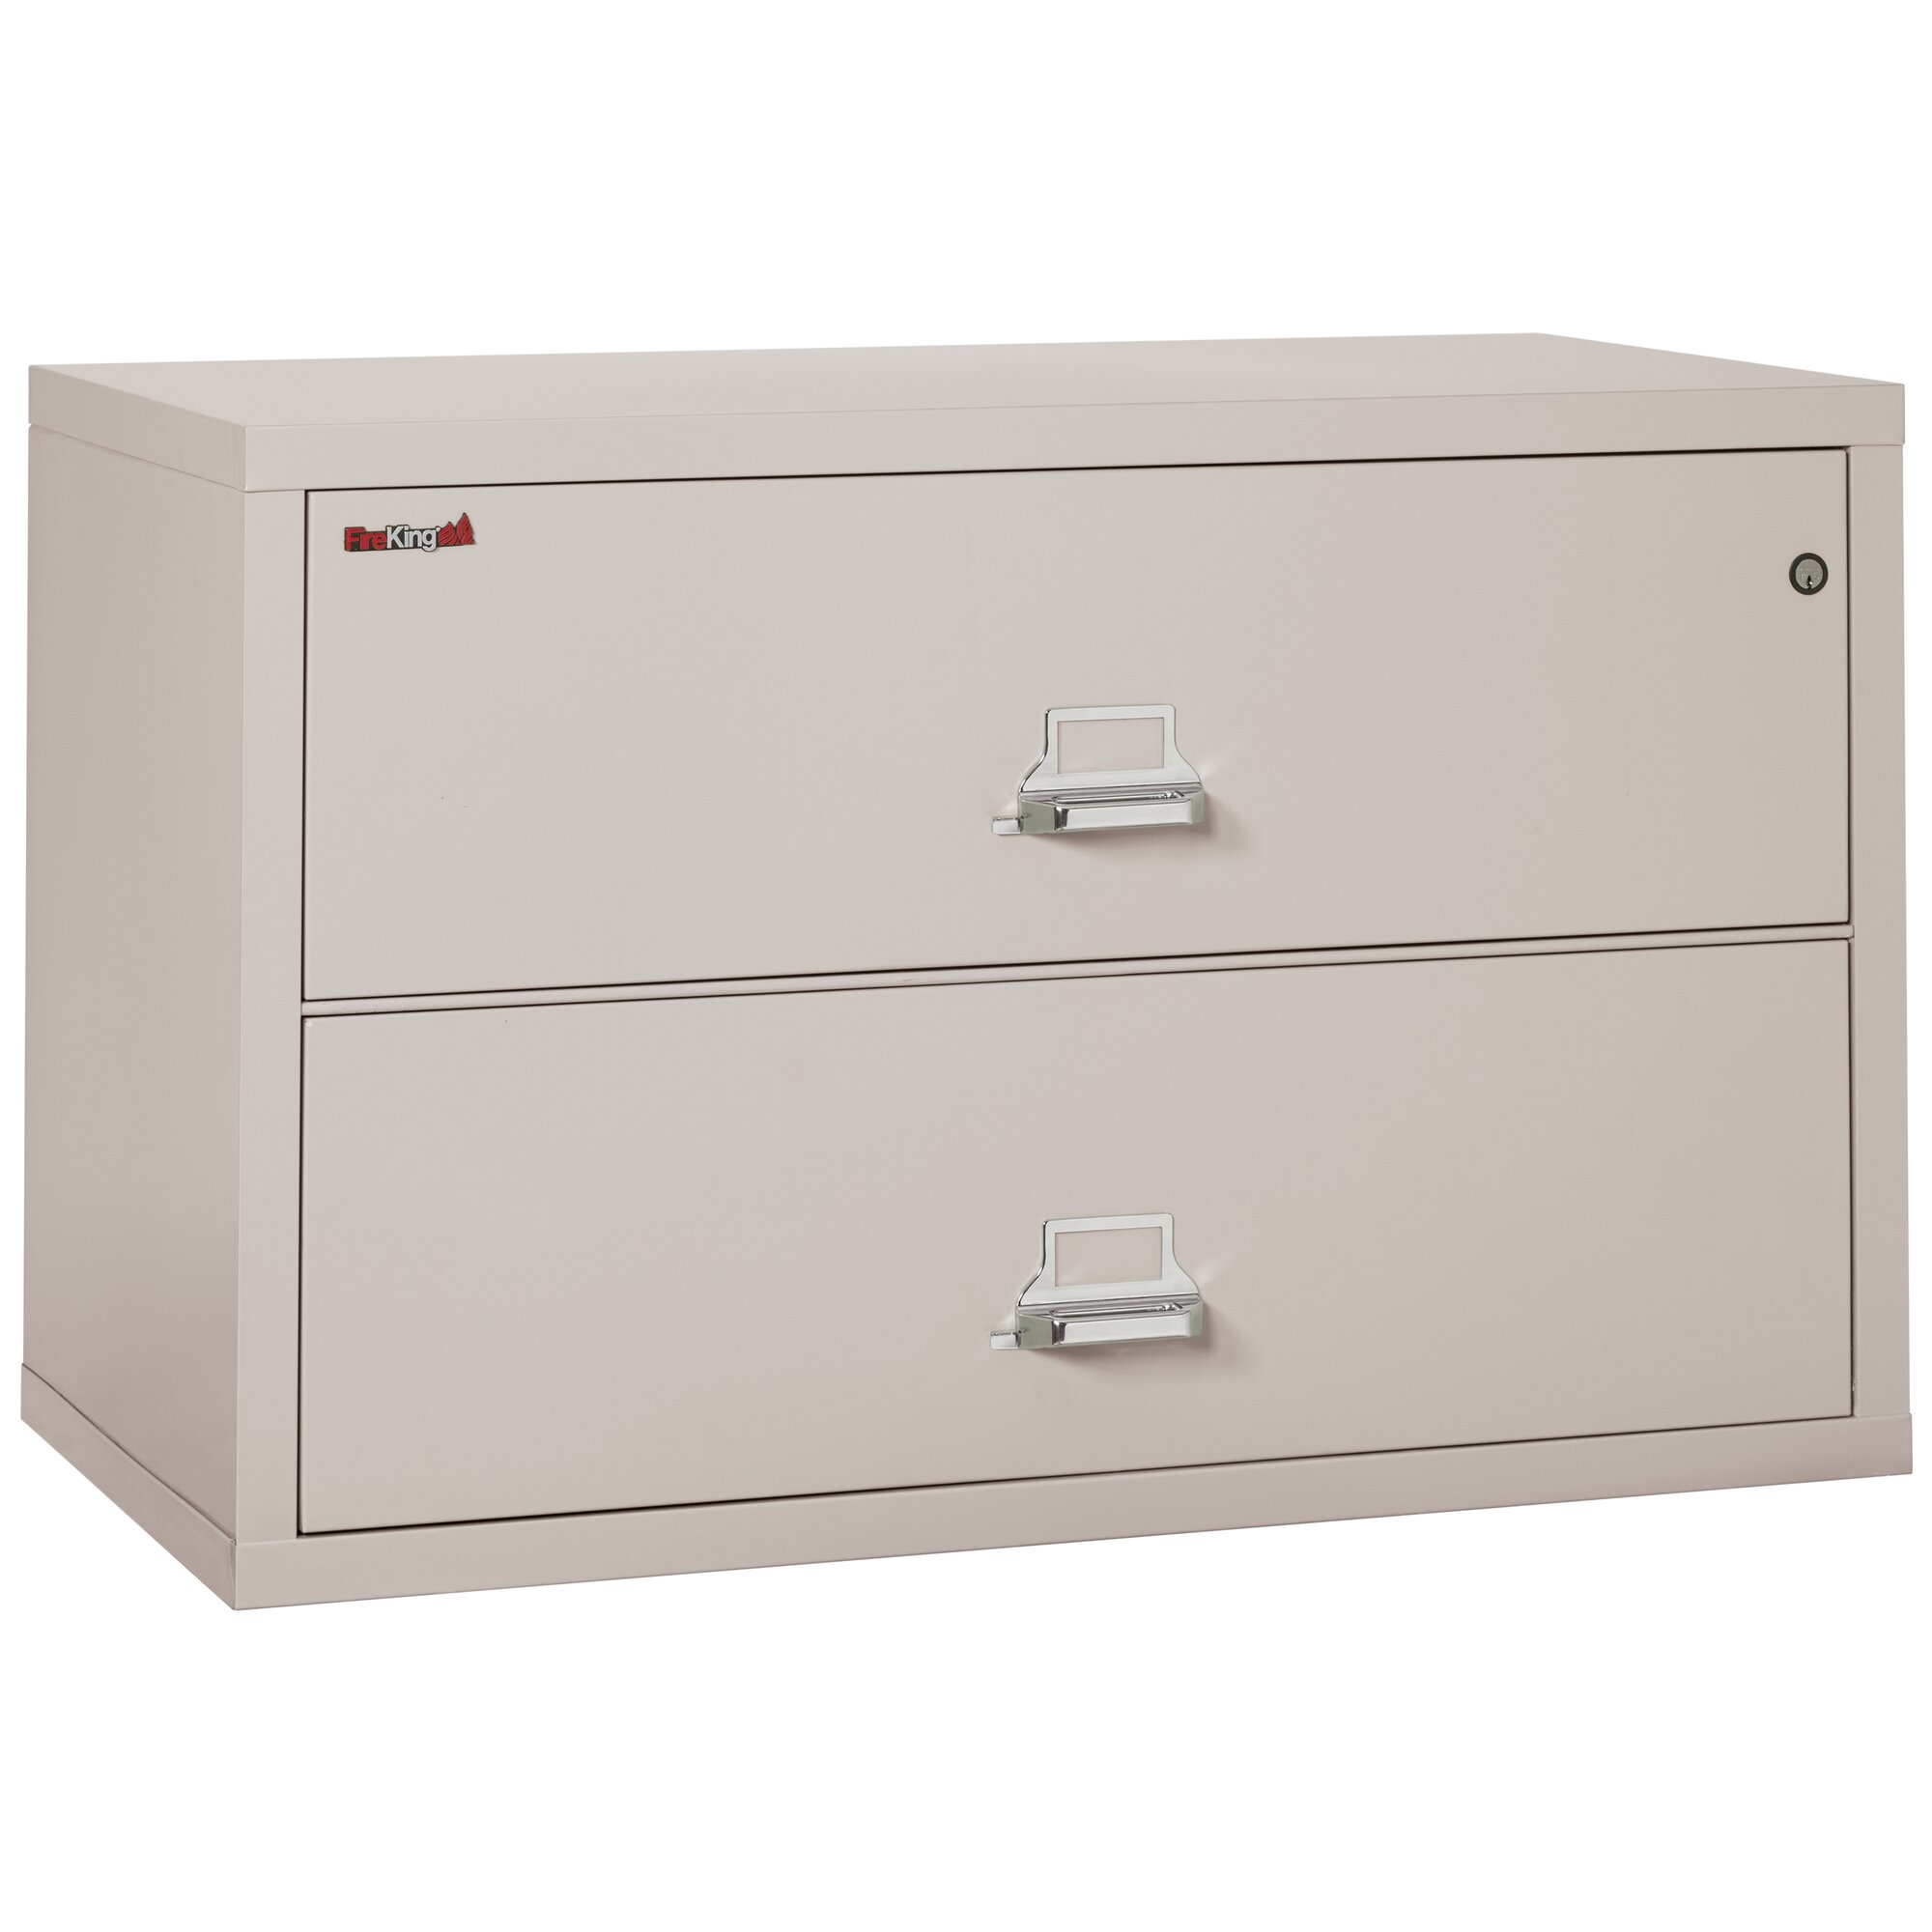 FireKing Fireproof 2-Drawer Lateral File Cabinet & Reviews